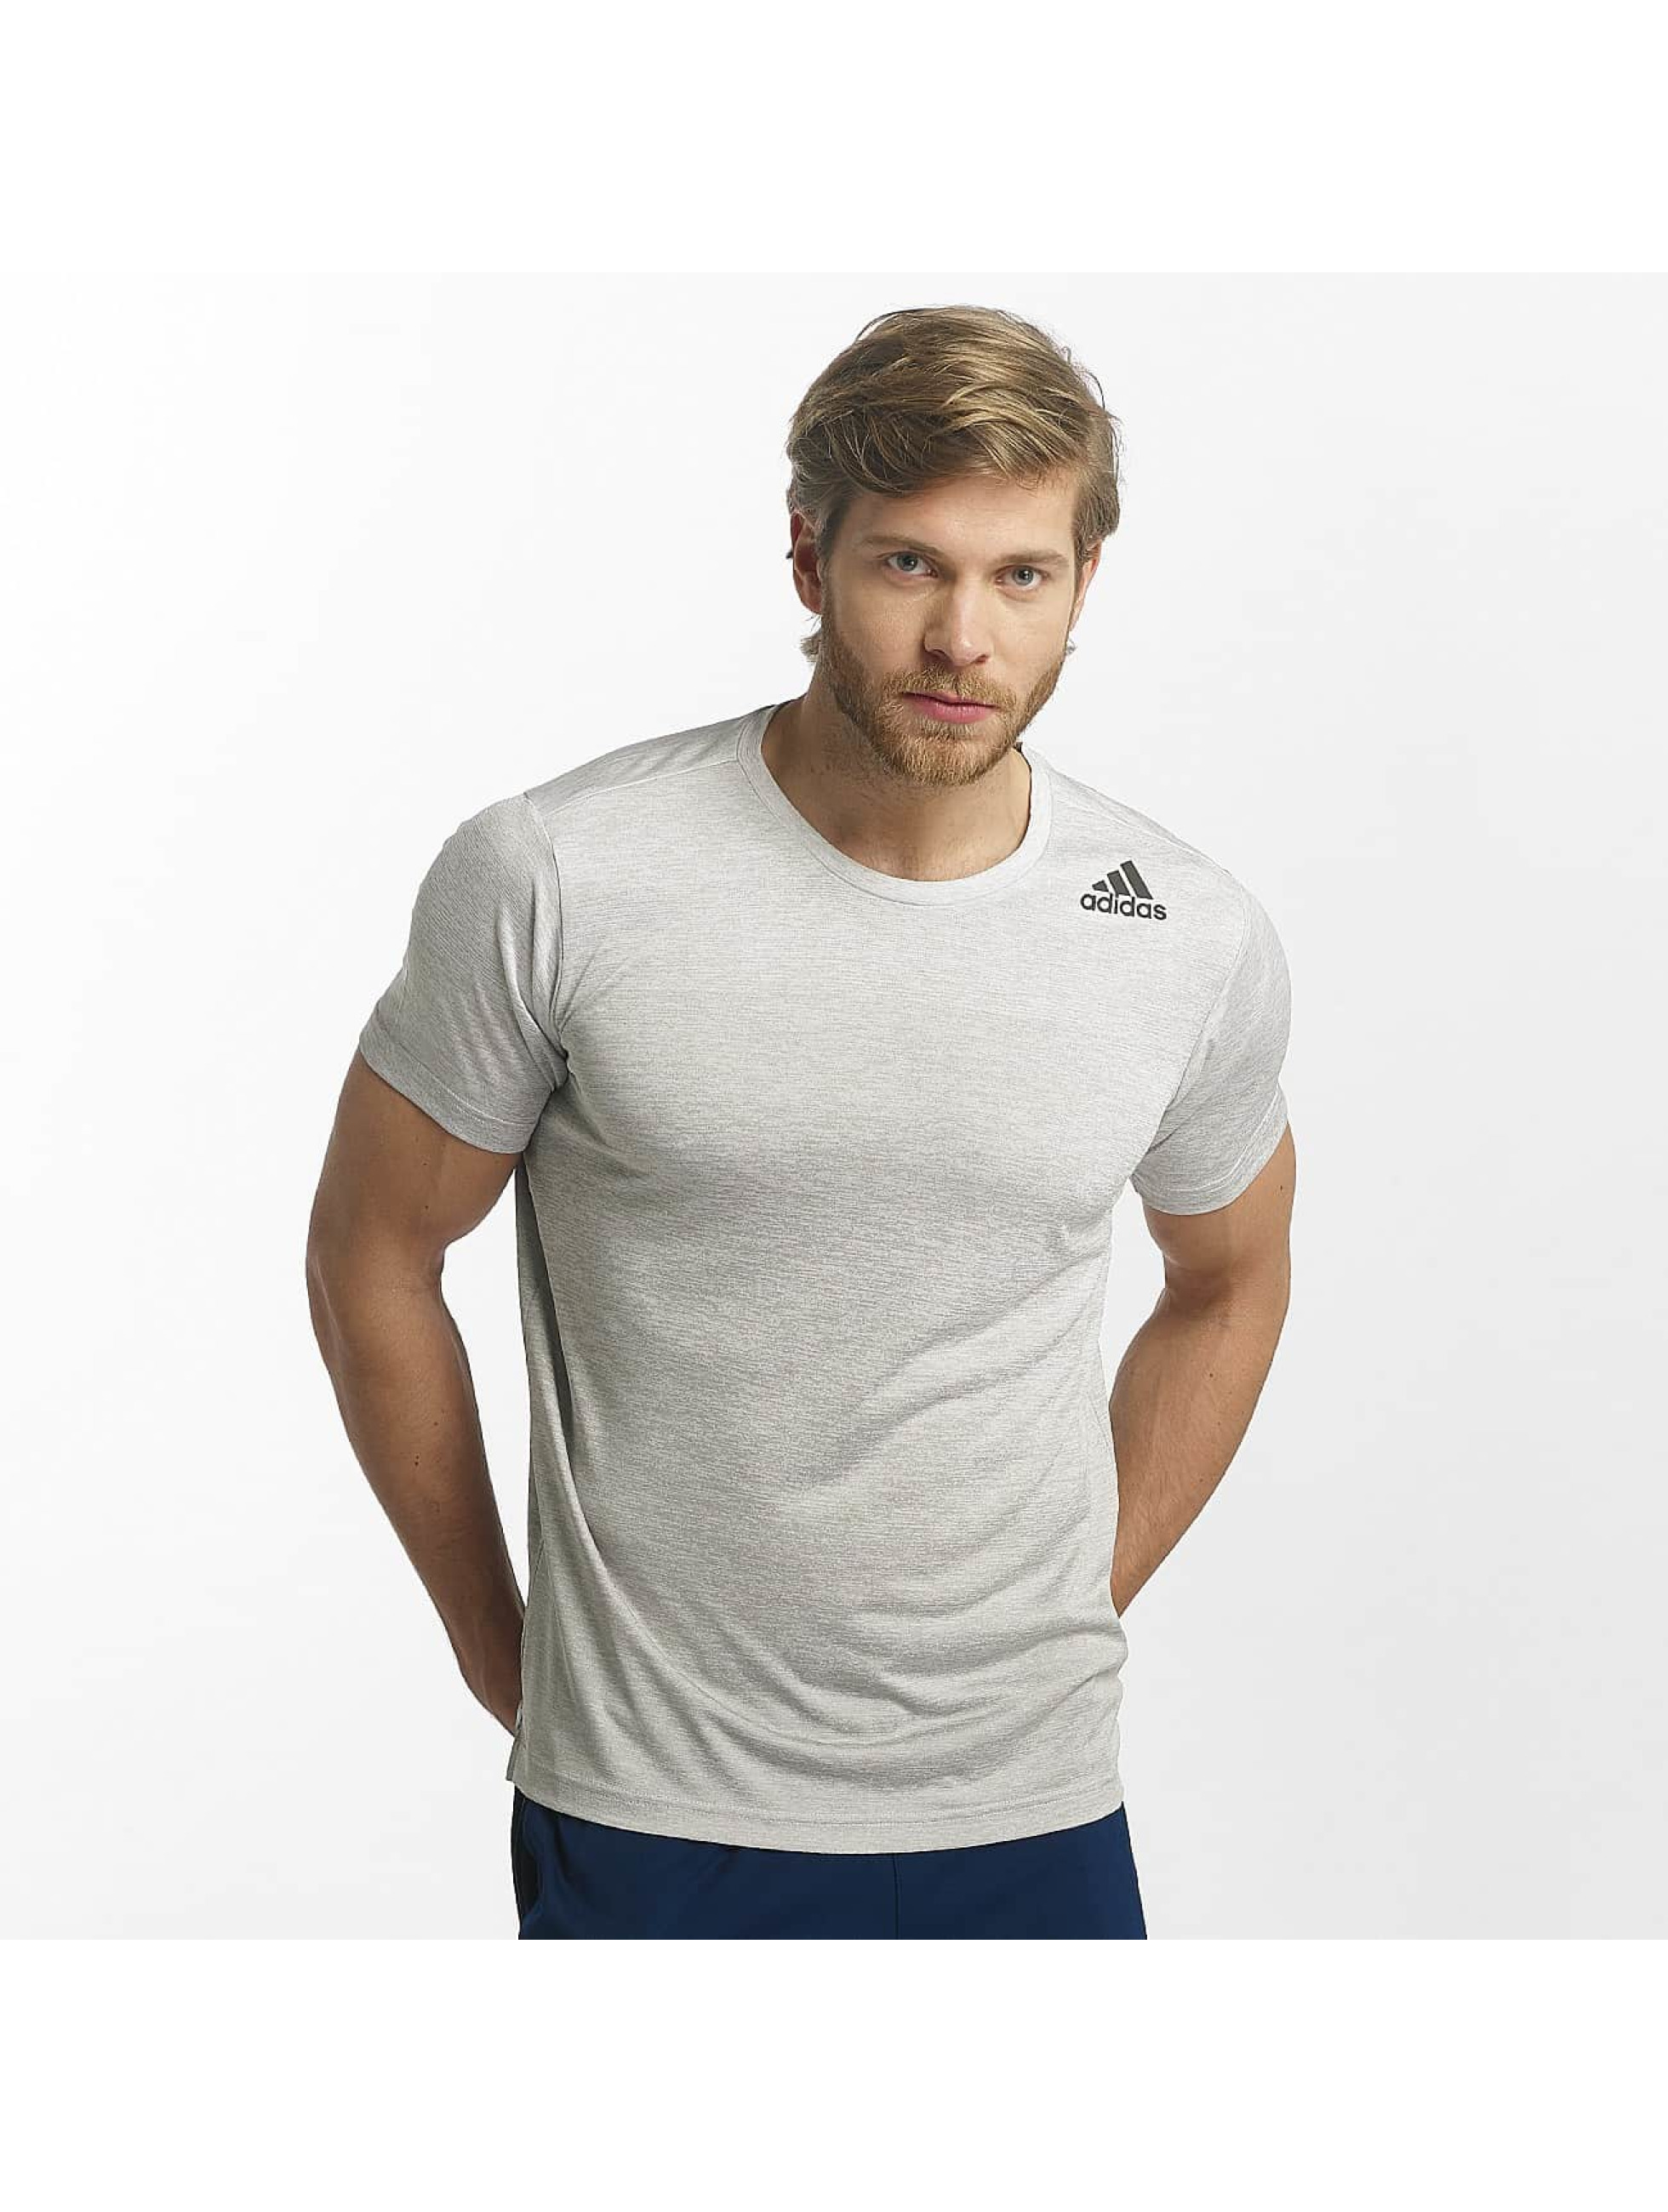 adidas Performance T-shirt Freelift Gradient vit